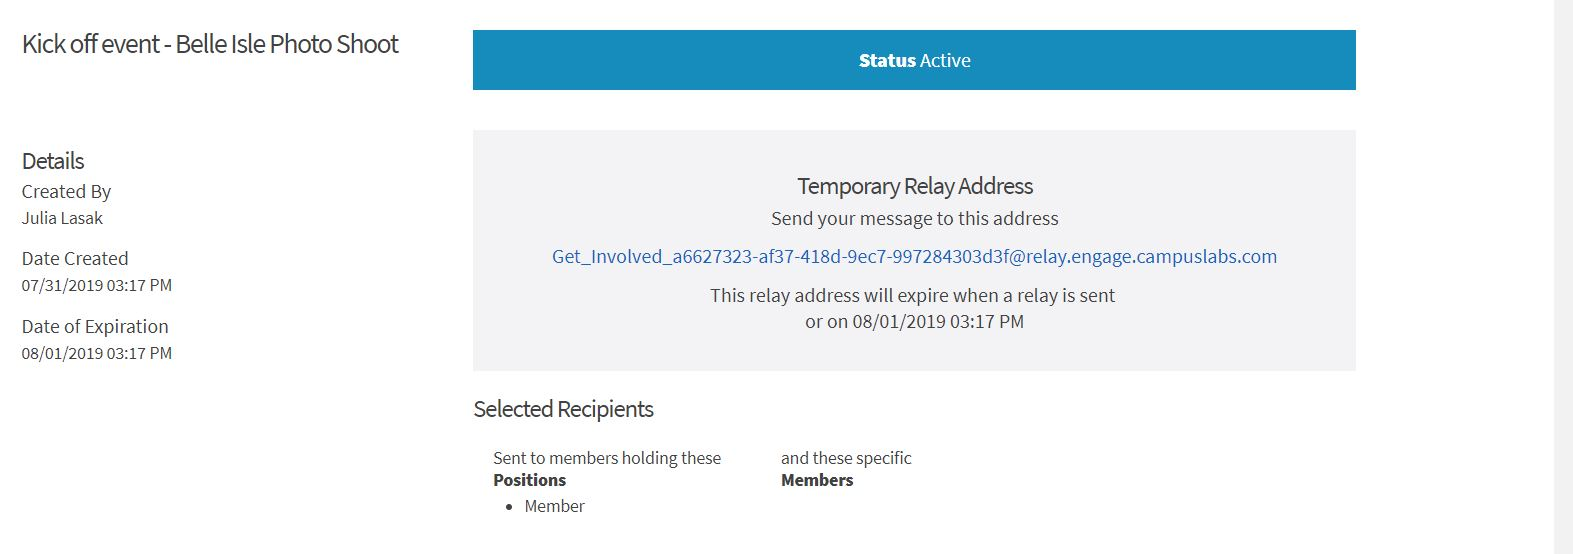 How to send relay messages - Dean of Students Office - Wayne